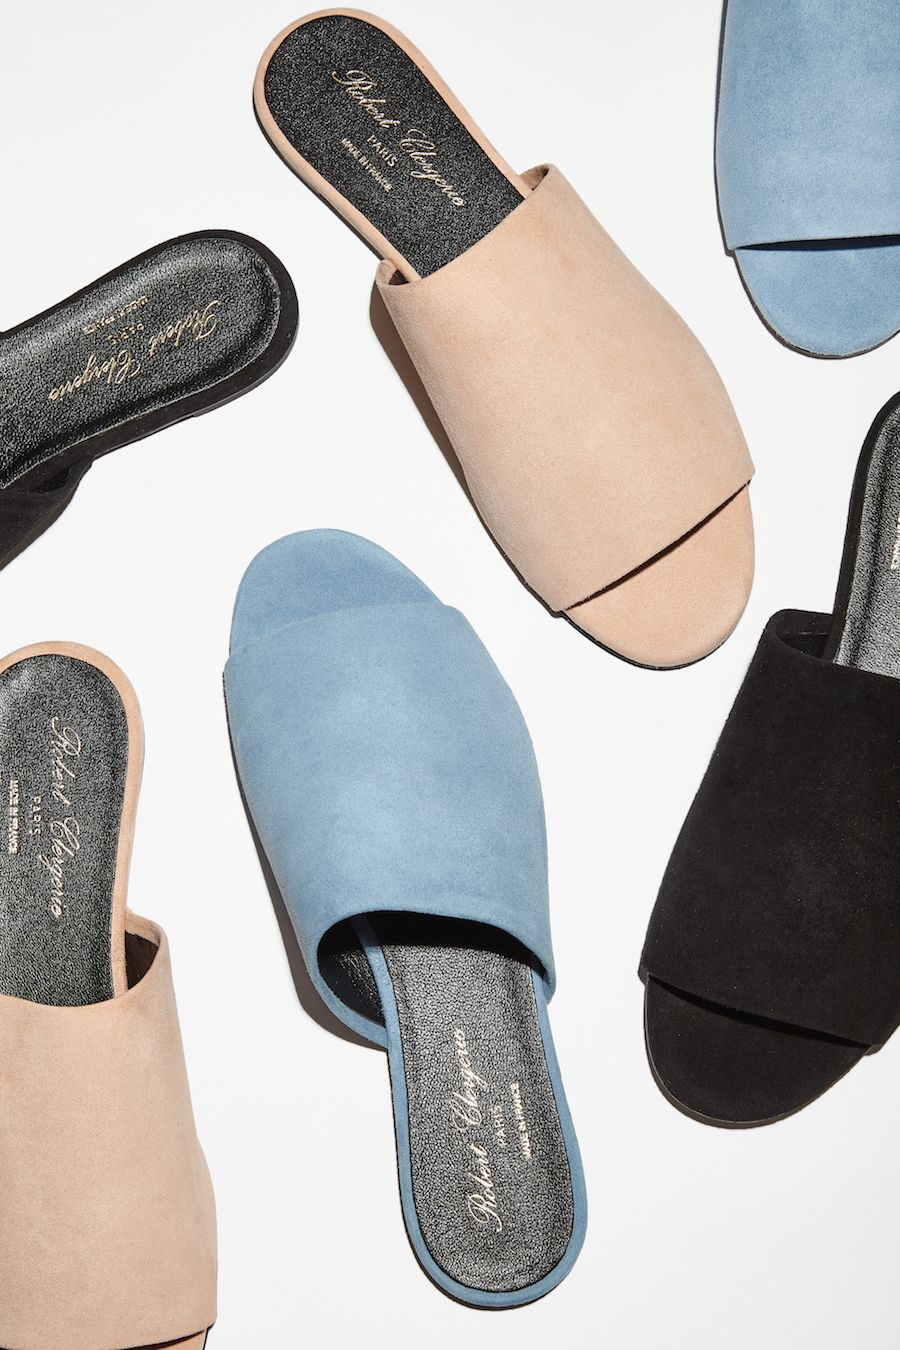 Clean Slide / Minimal lines in ultra-soft suede. Presenting the Gigy Slide from Robert Clergerie.